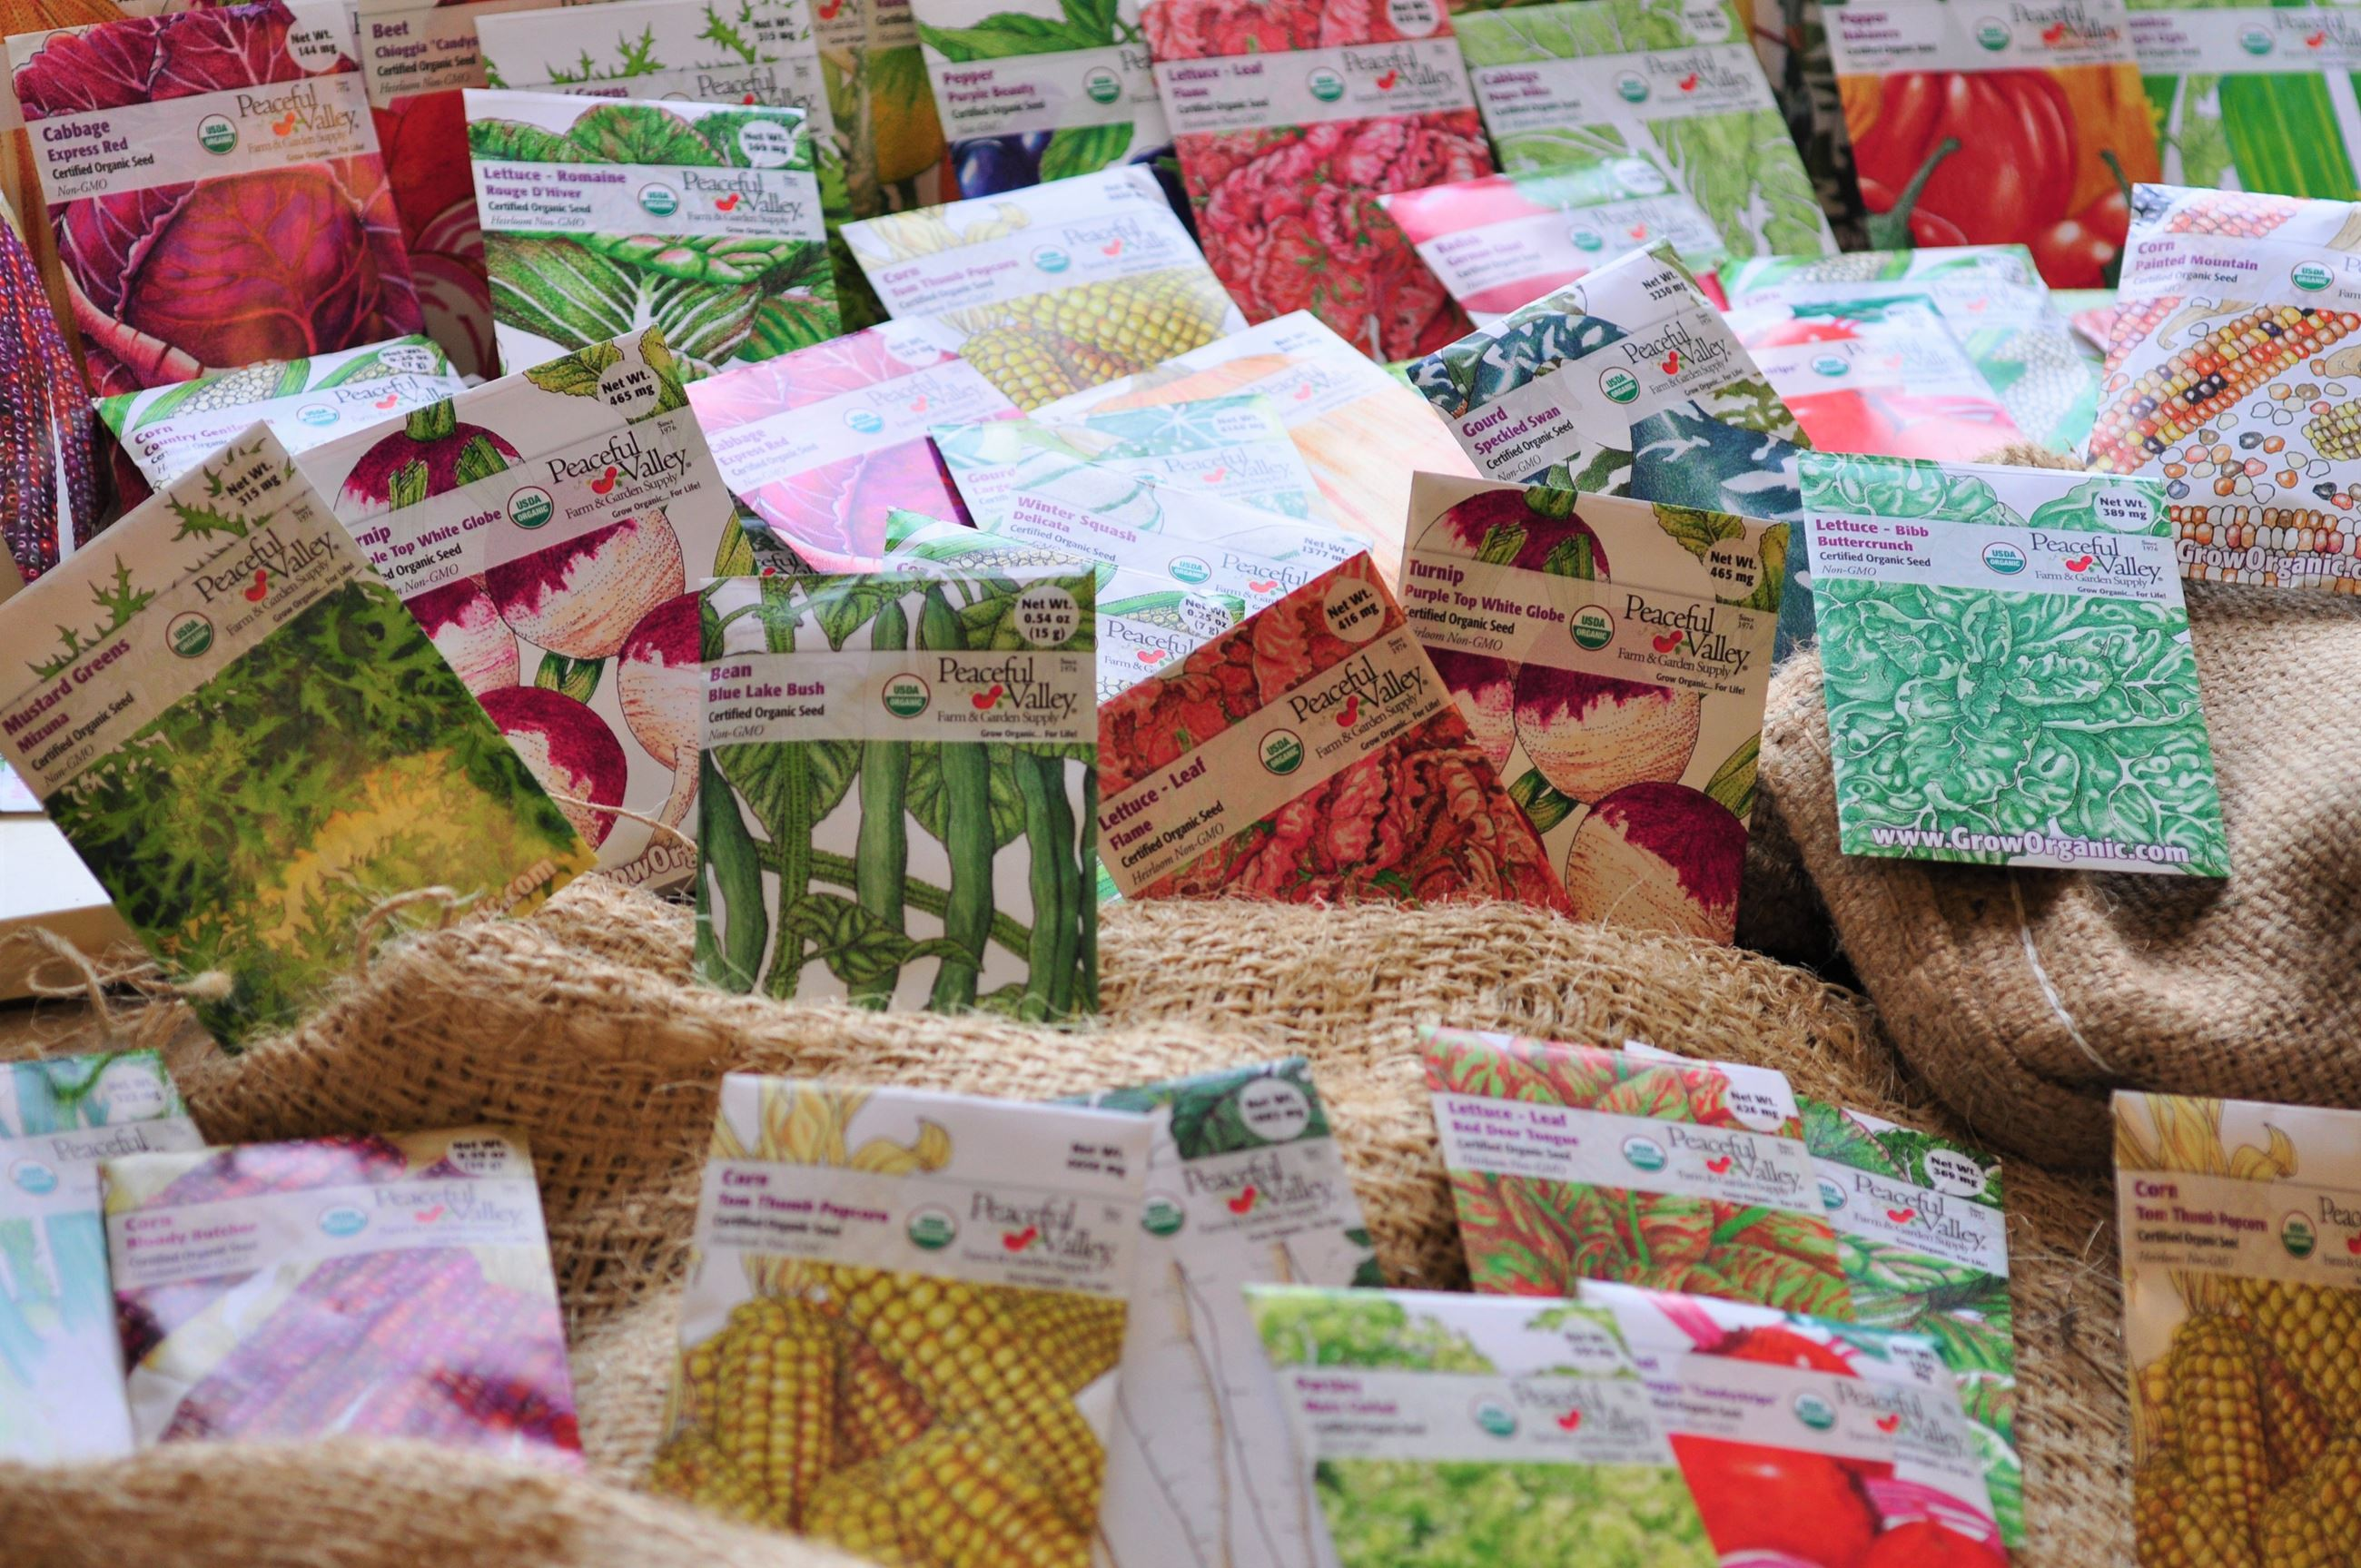 Seed packets on a burlap bag